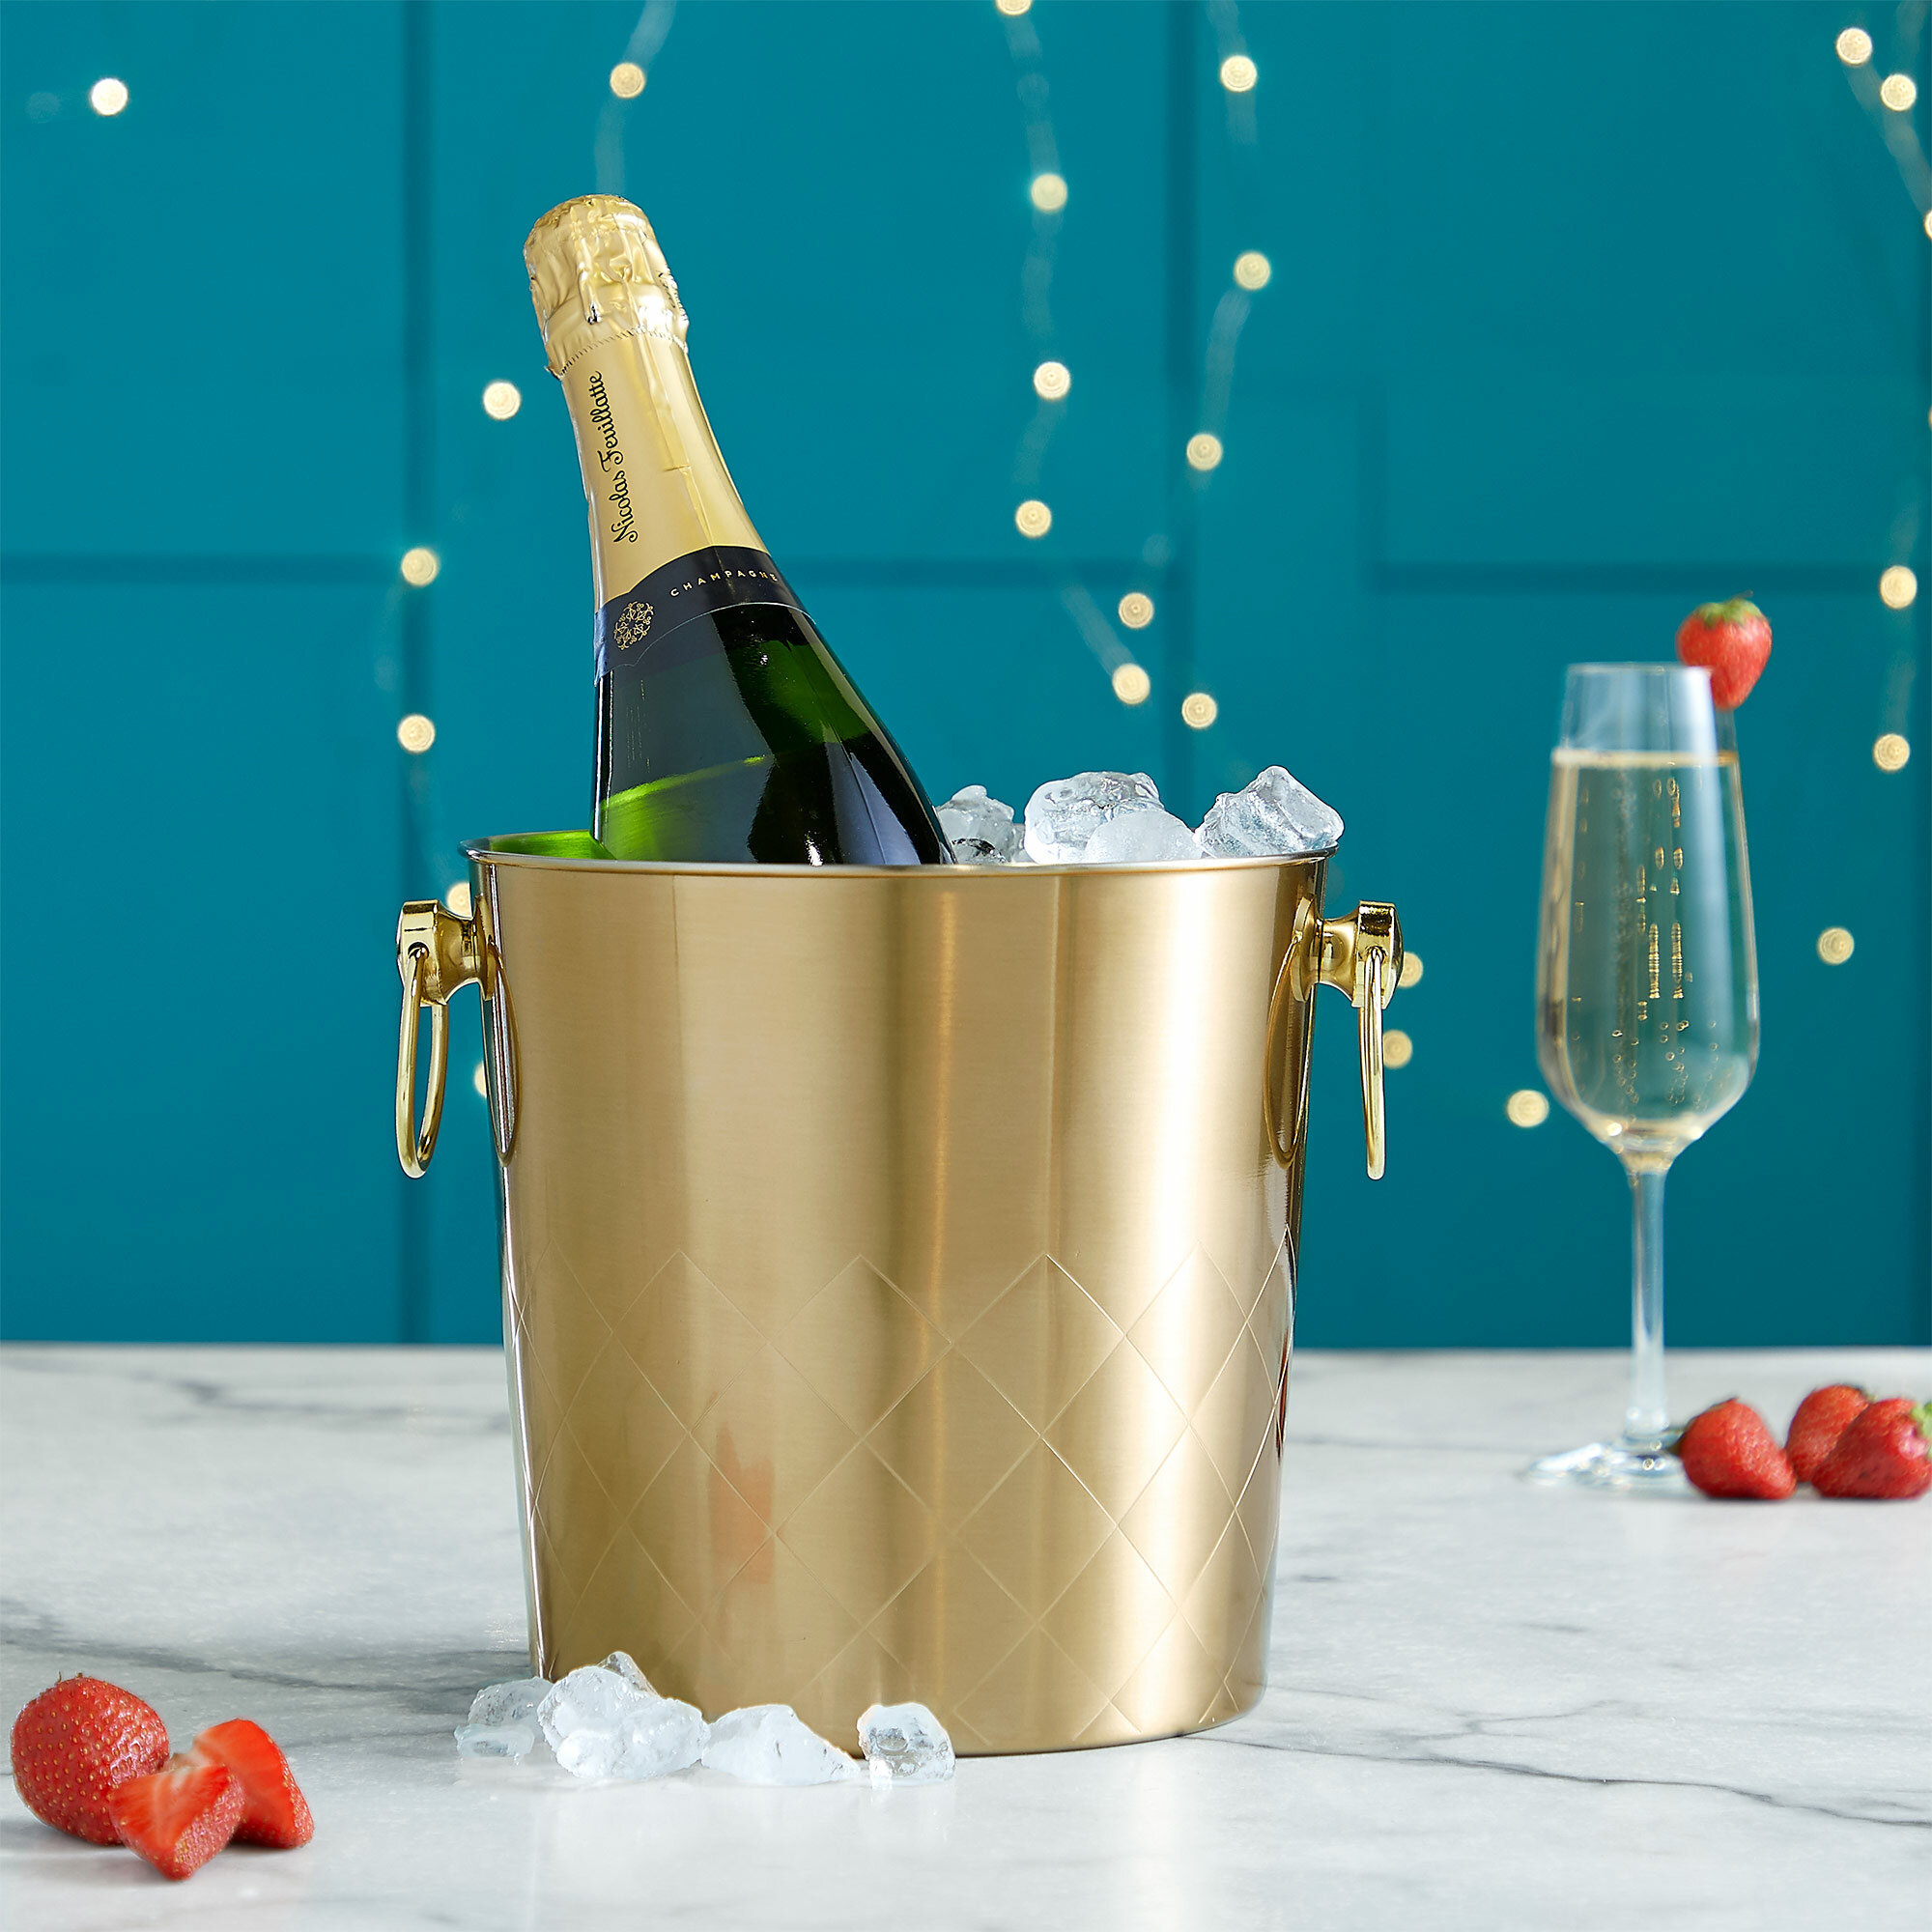 VonShef Champagne Bucket Brushed Gold 5L Carry Handle Stainless Steel Ice Cooler